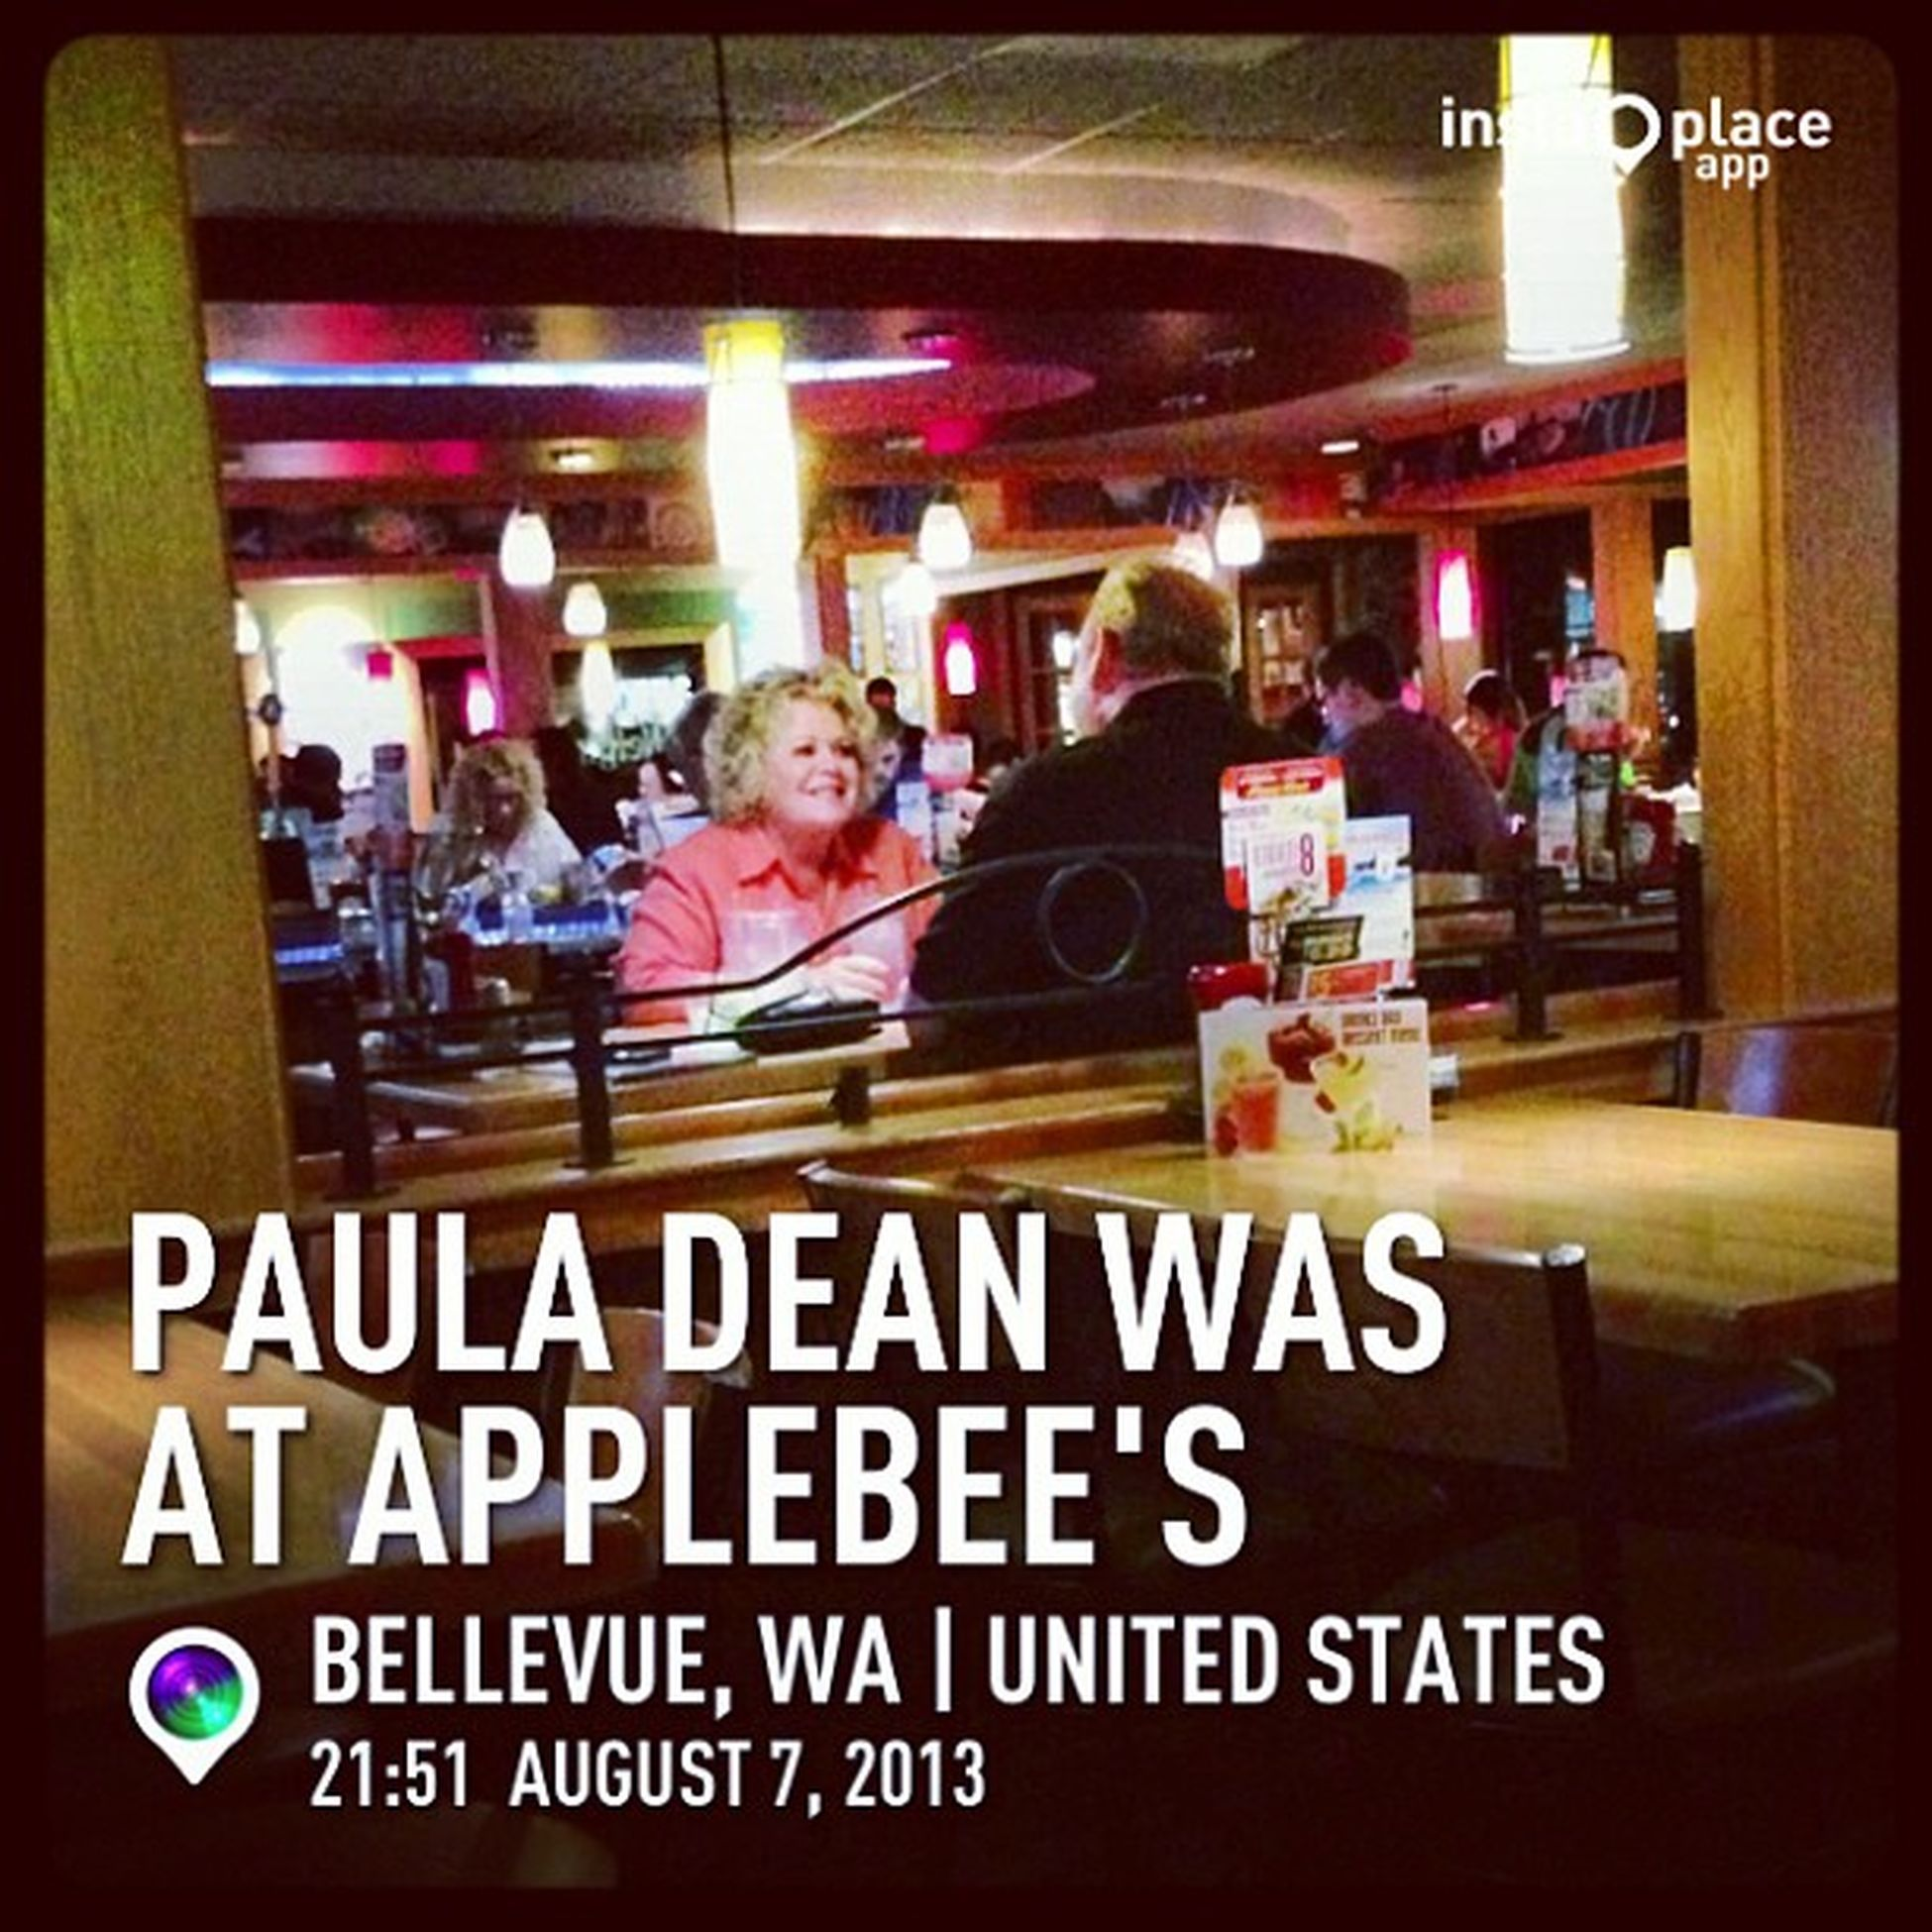 Thought it was Paula dean in the bar. Lol. InstaPlace Instaplaceapp Instagood Photooftheday instamood picoftheday instadaily photo instacool instapic picture pic @instaplacemobi place earth world unitedstates usa US bellevue night